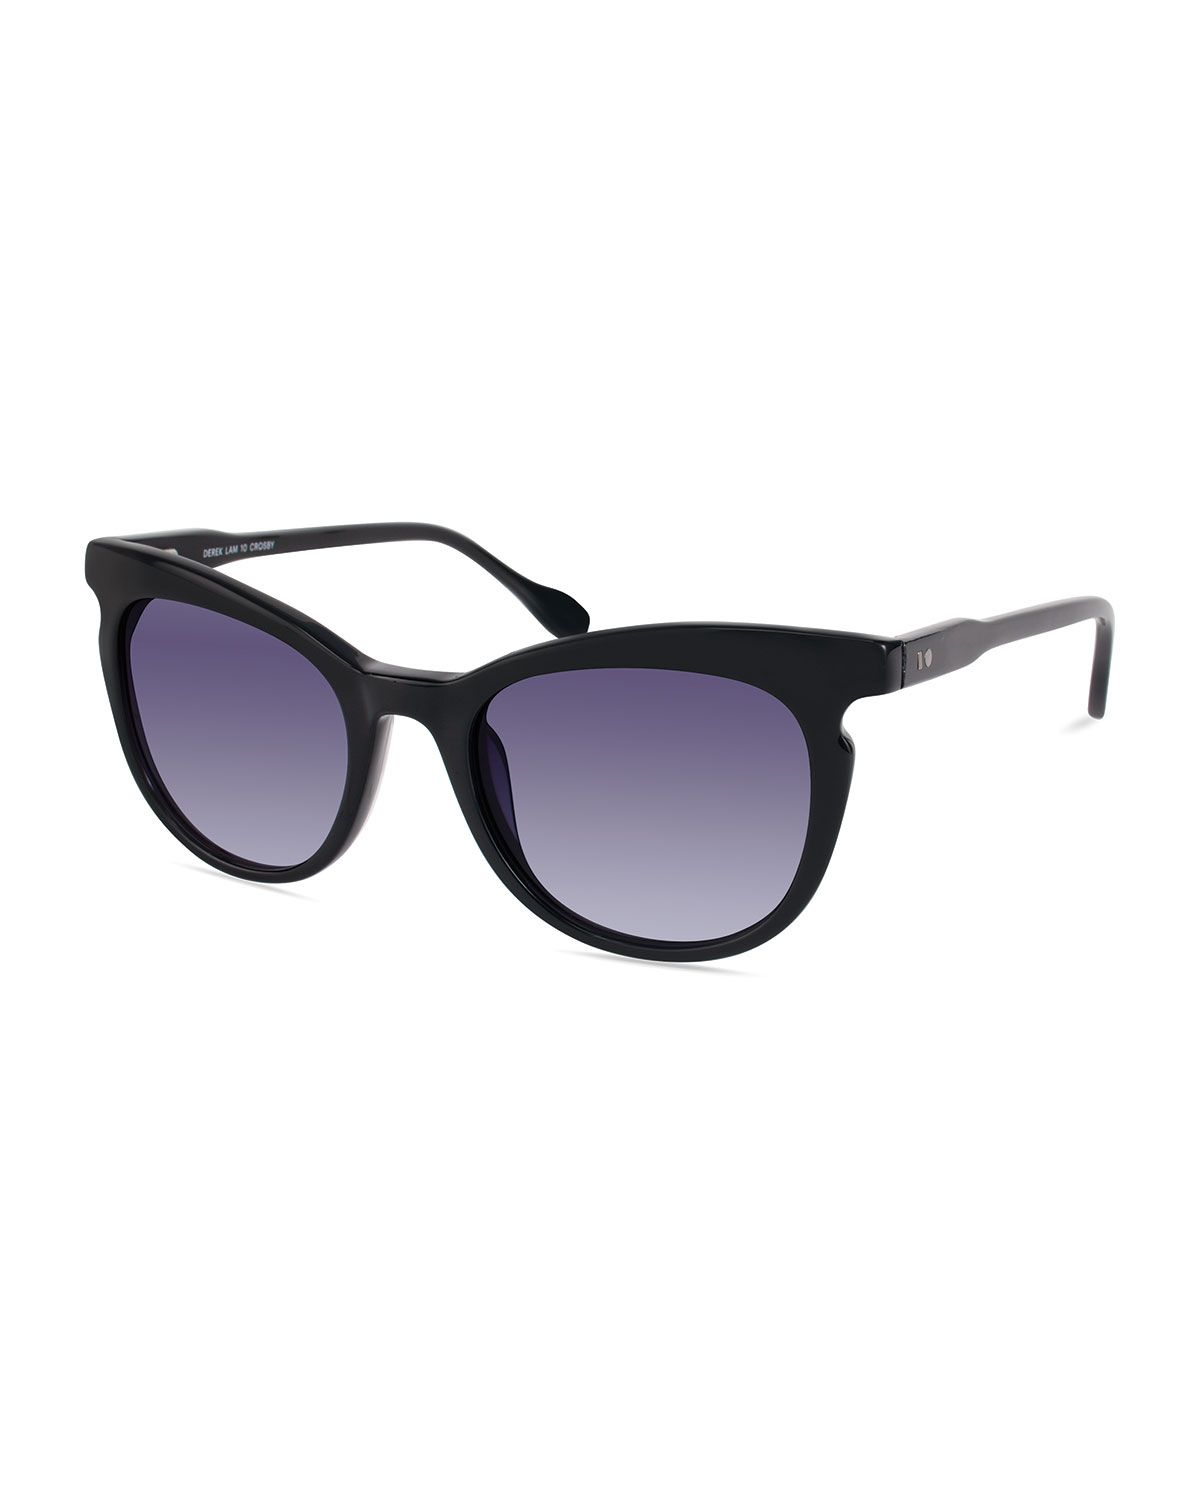 932ccf7ca67 Derek Lam 10 Crosby Marrakech Rounded Square Acetate Sunglasses ...